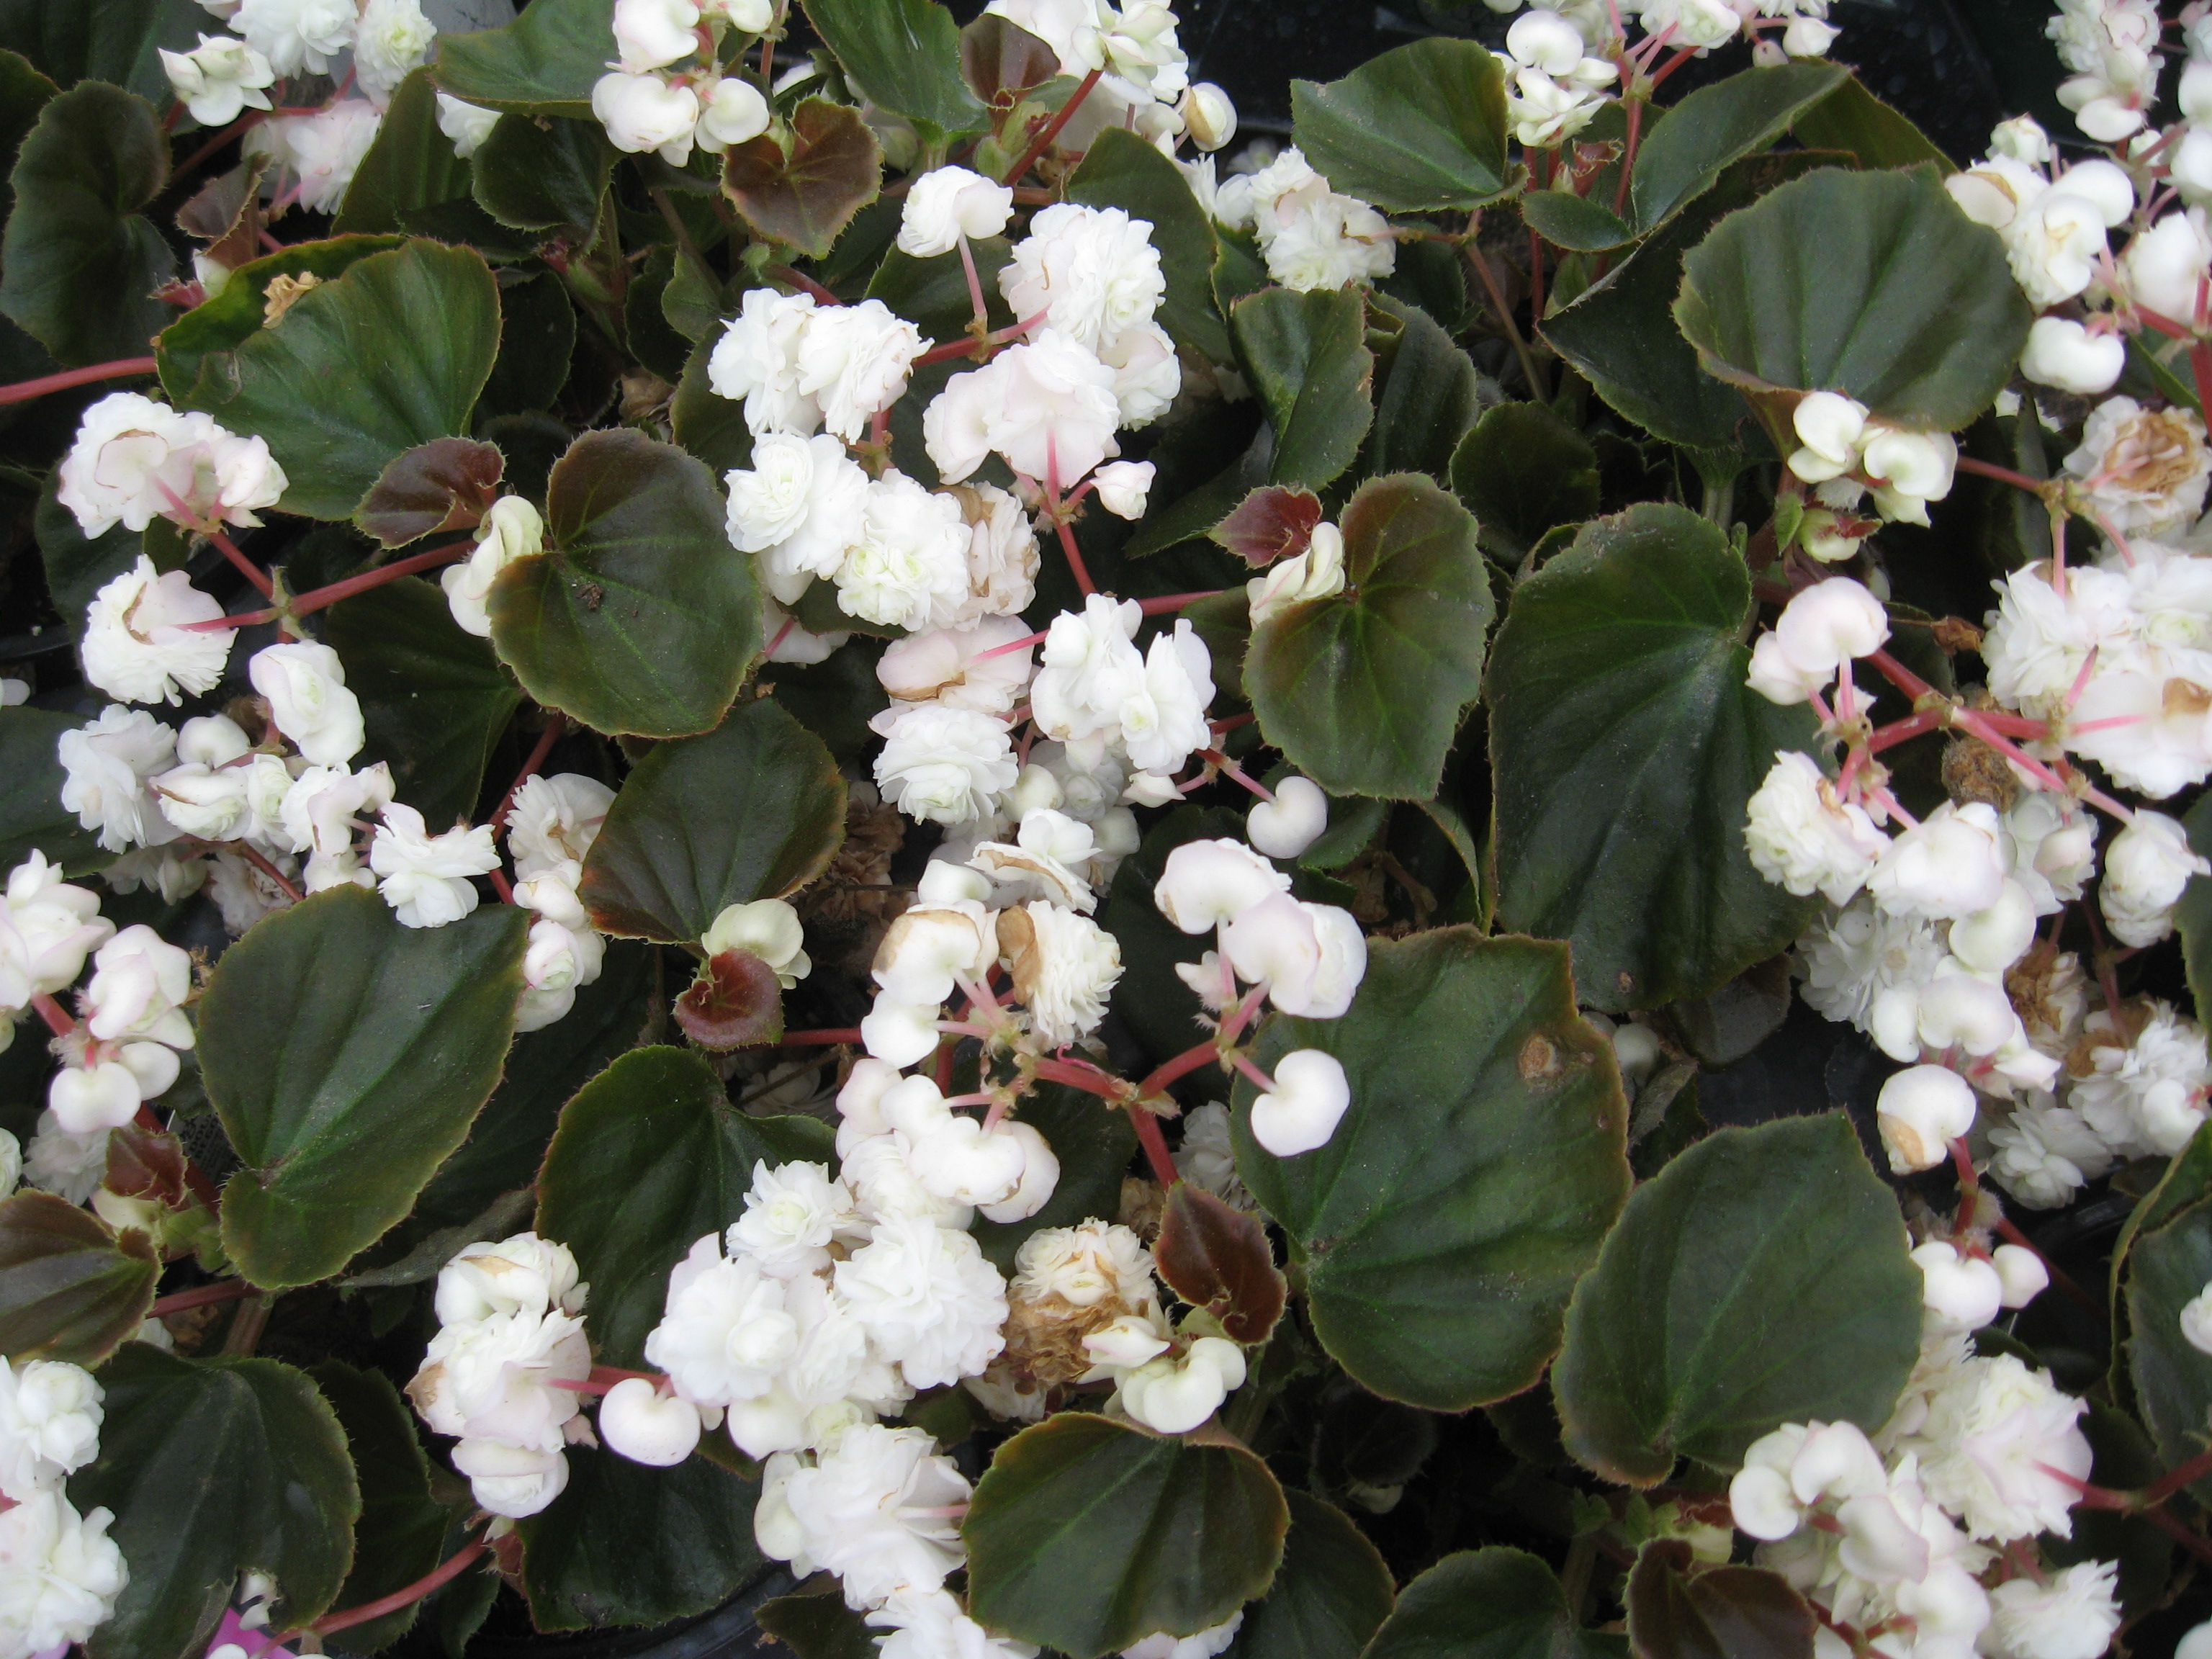 Dozens of double wax begonia plants combined together.